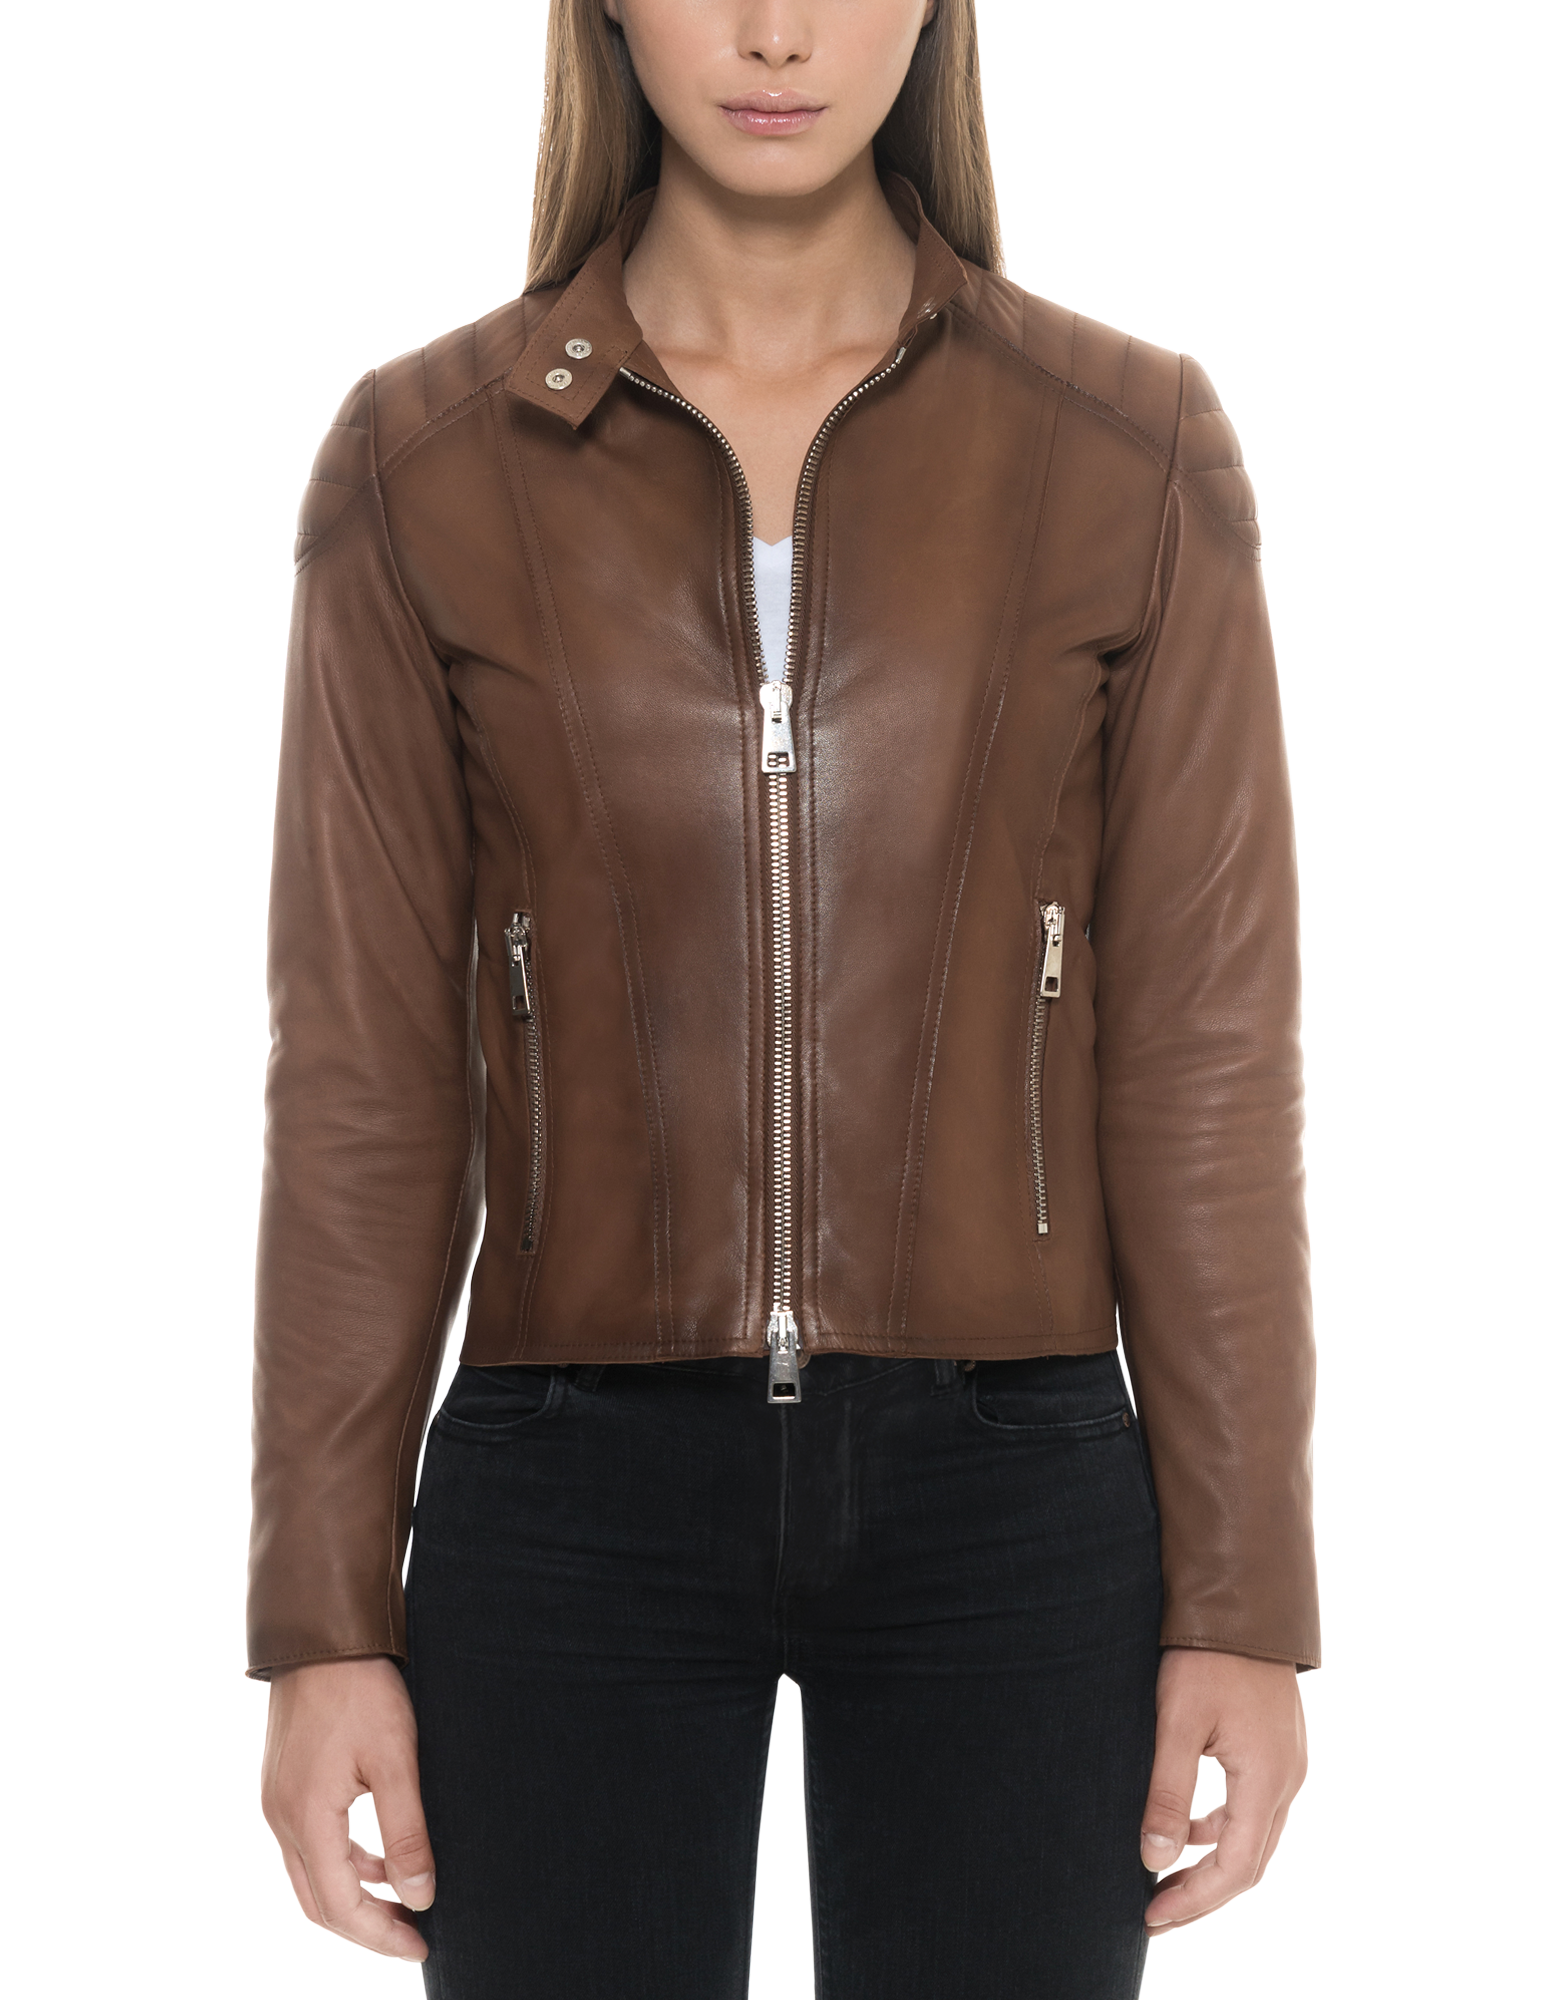 Image of Brown Padded Leather Women's Zip Front Jacket